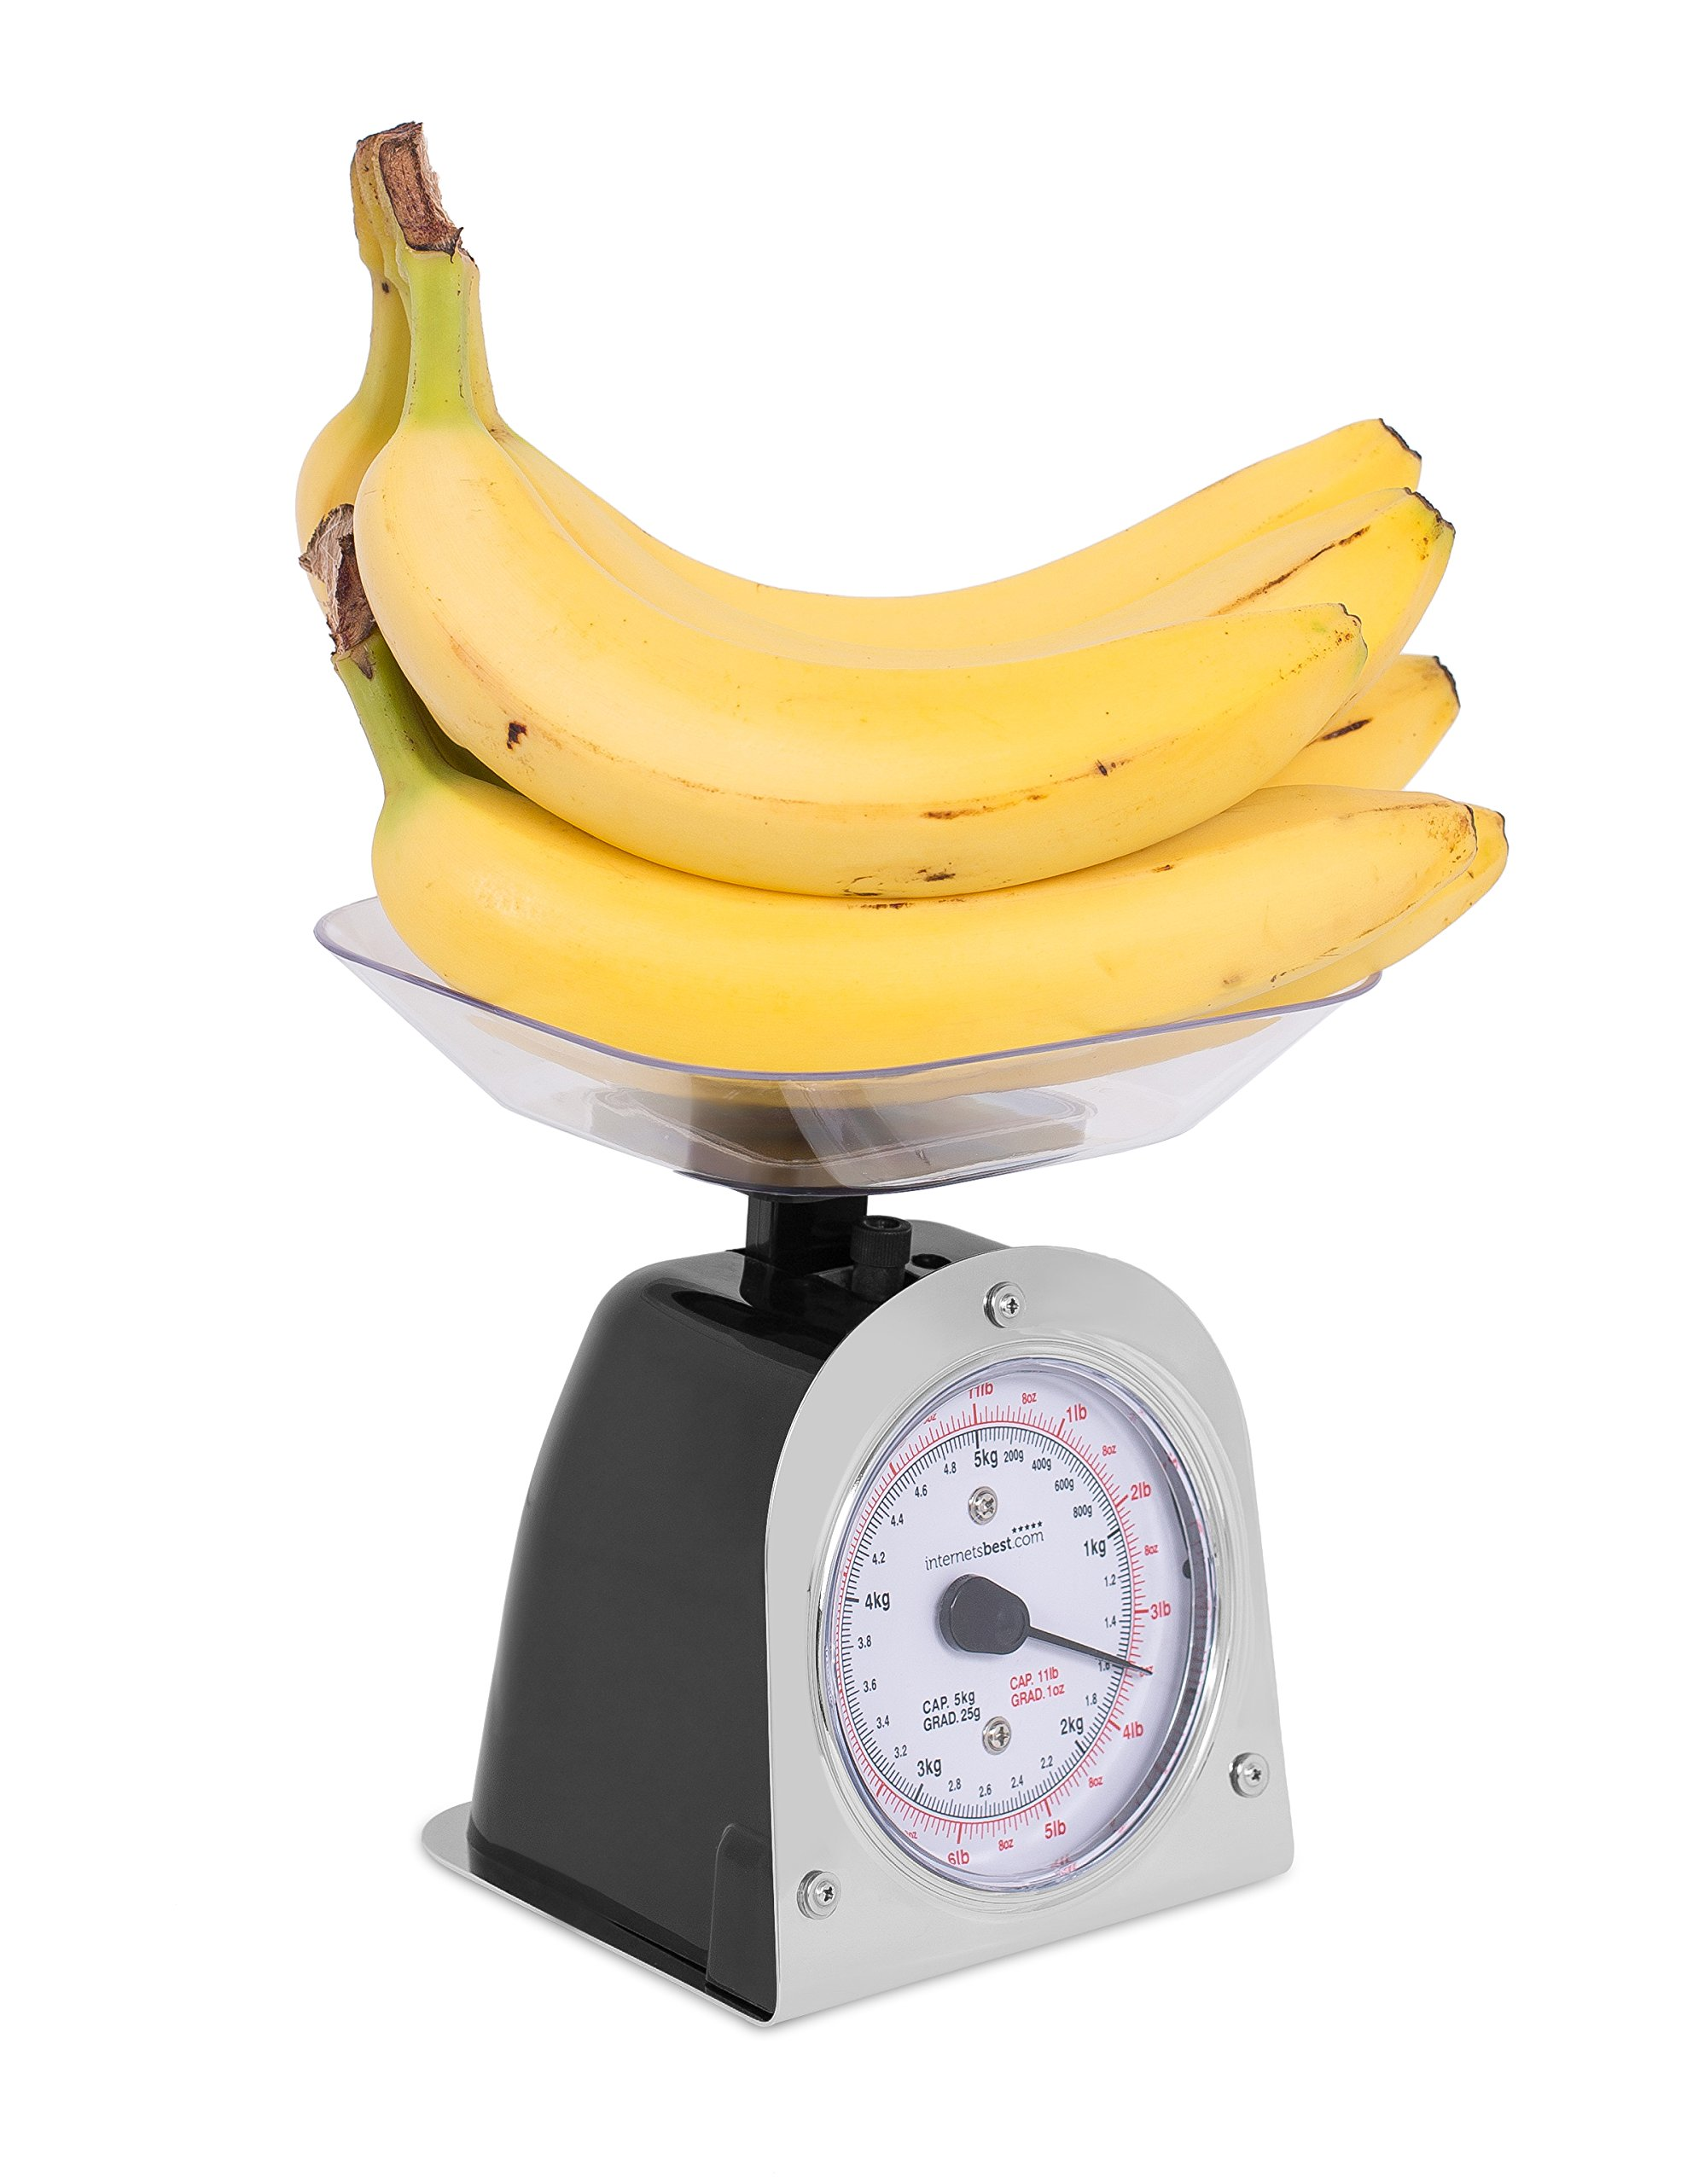 Internet's Best Mechanical Kitchen Food Weight Scale with Bowl | Accurate Measurements | Weighs Up 11 Lbs | 1KG - 5KG by Internet's Best (Image #7)